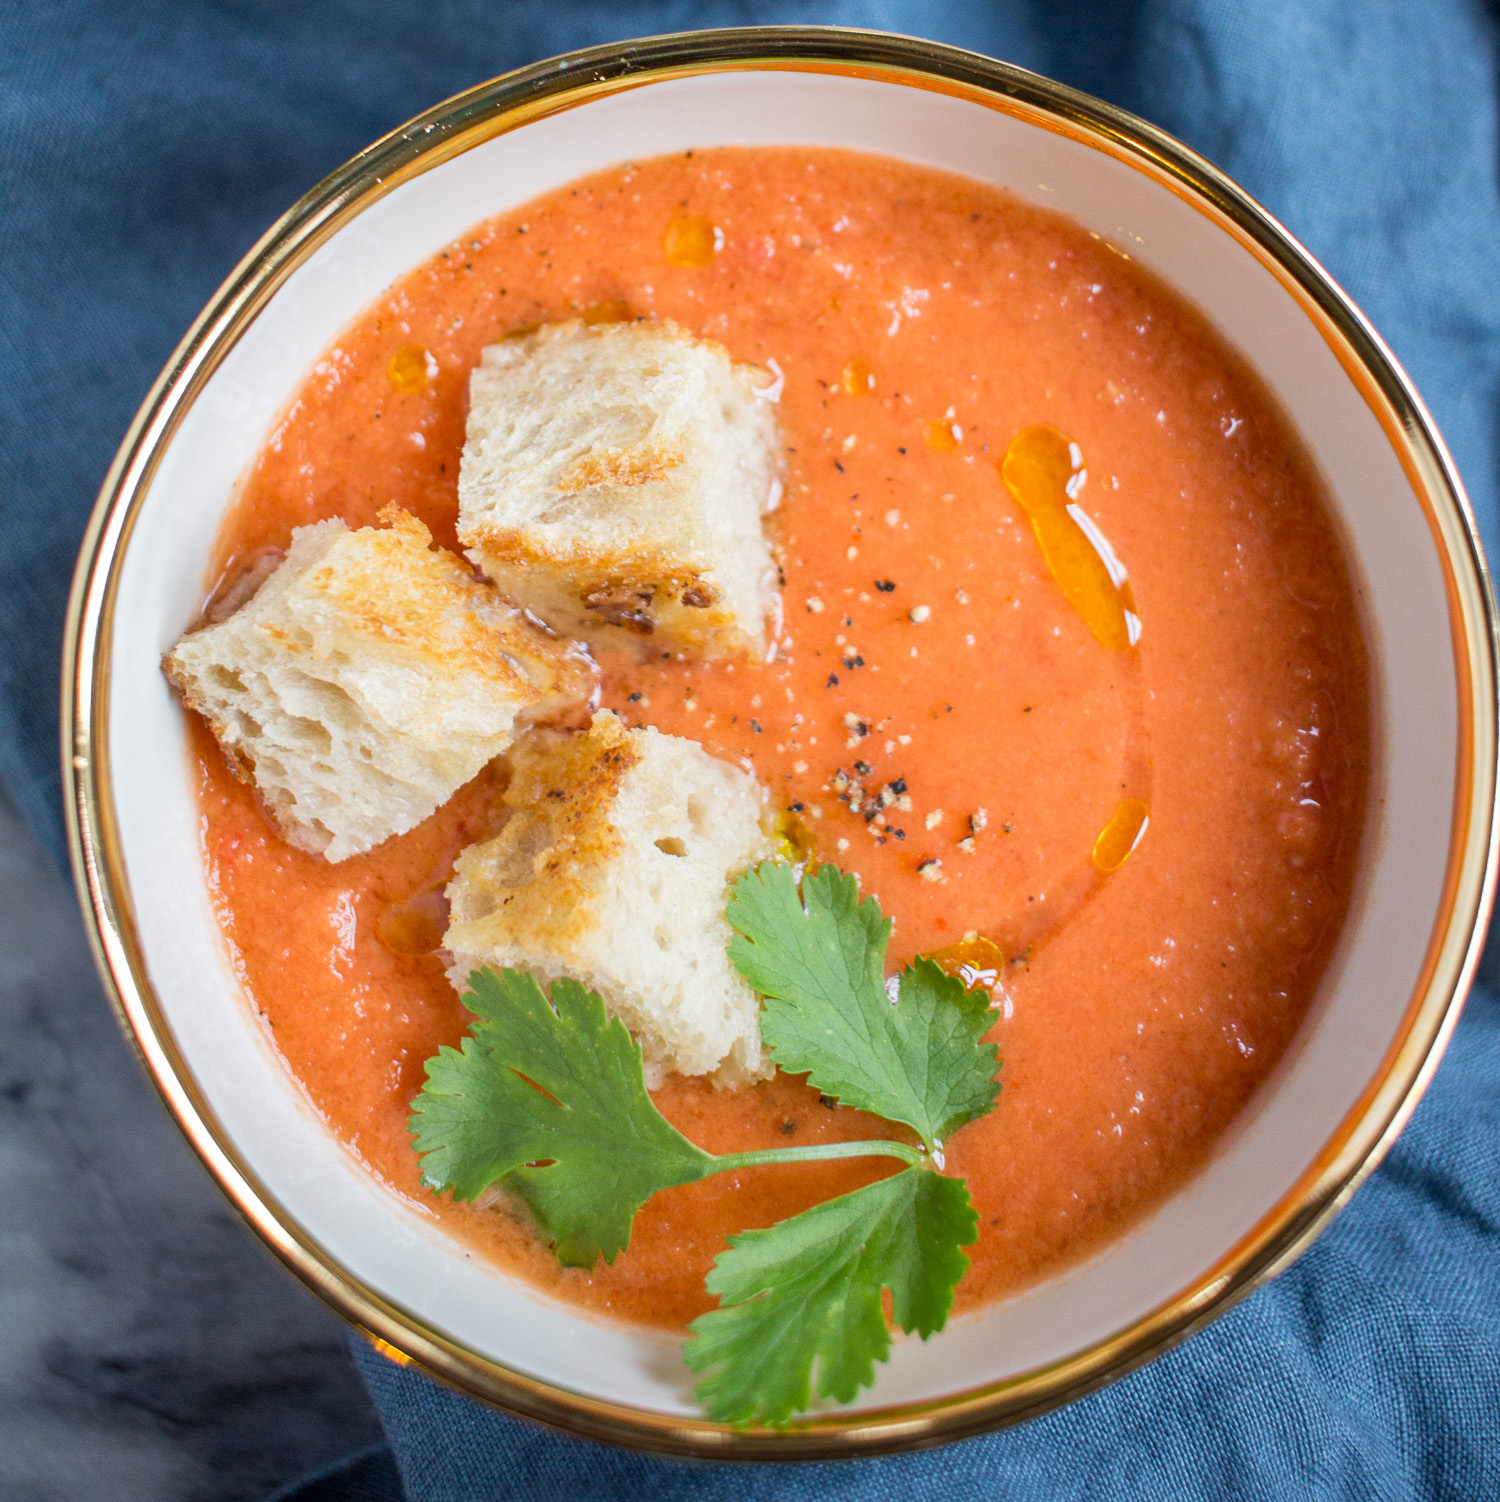 How to Make Gazpacho